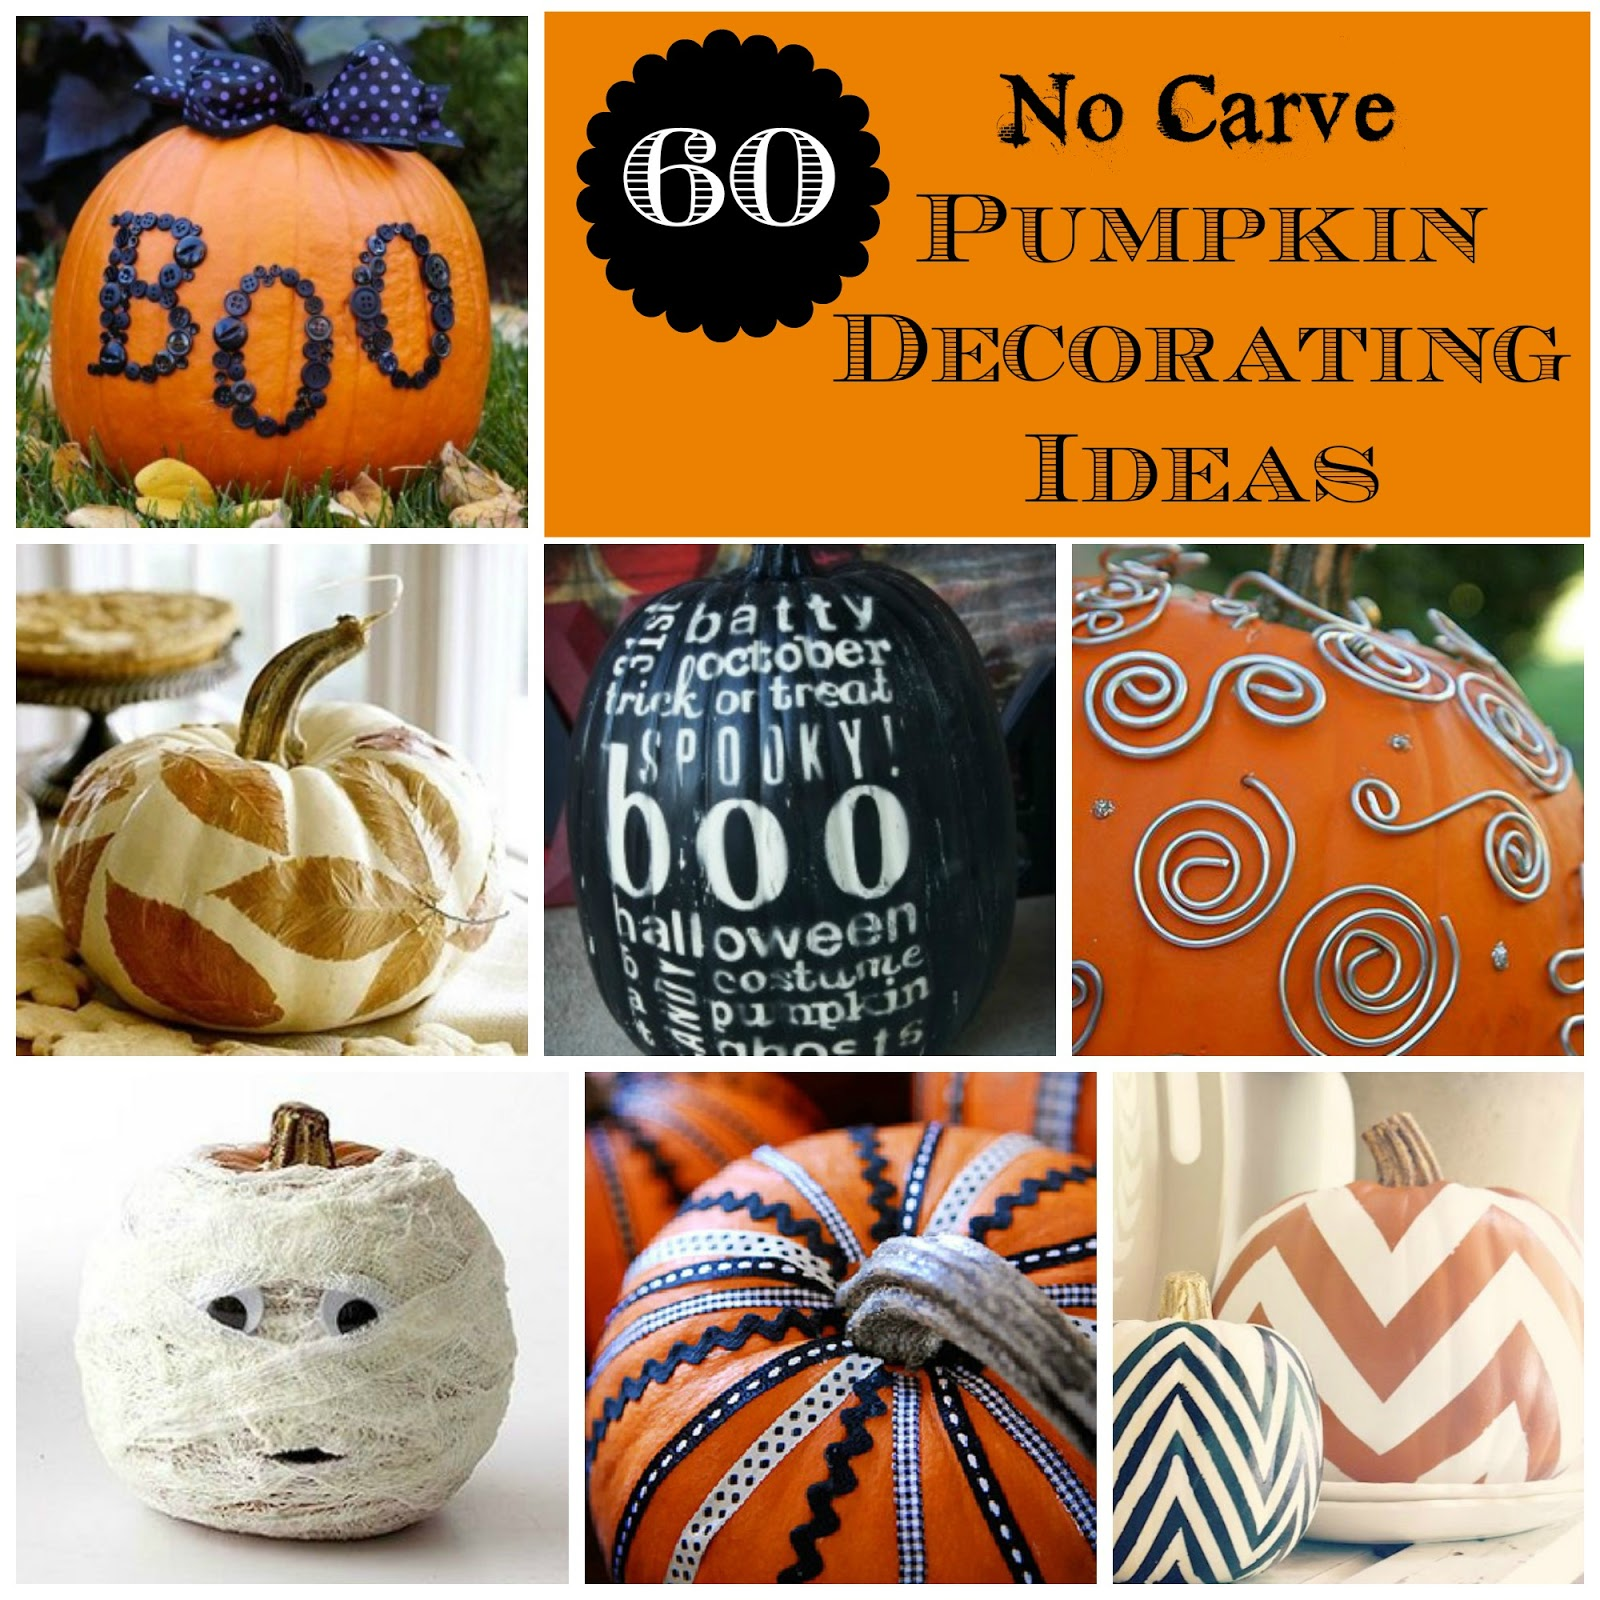 With Halloween And The Fall Season Sneaking Up, I Wanted To Share Some Fun  No Carve Pumpkin Decorating Ideas! The Possibilities Are Endless When You  ...